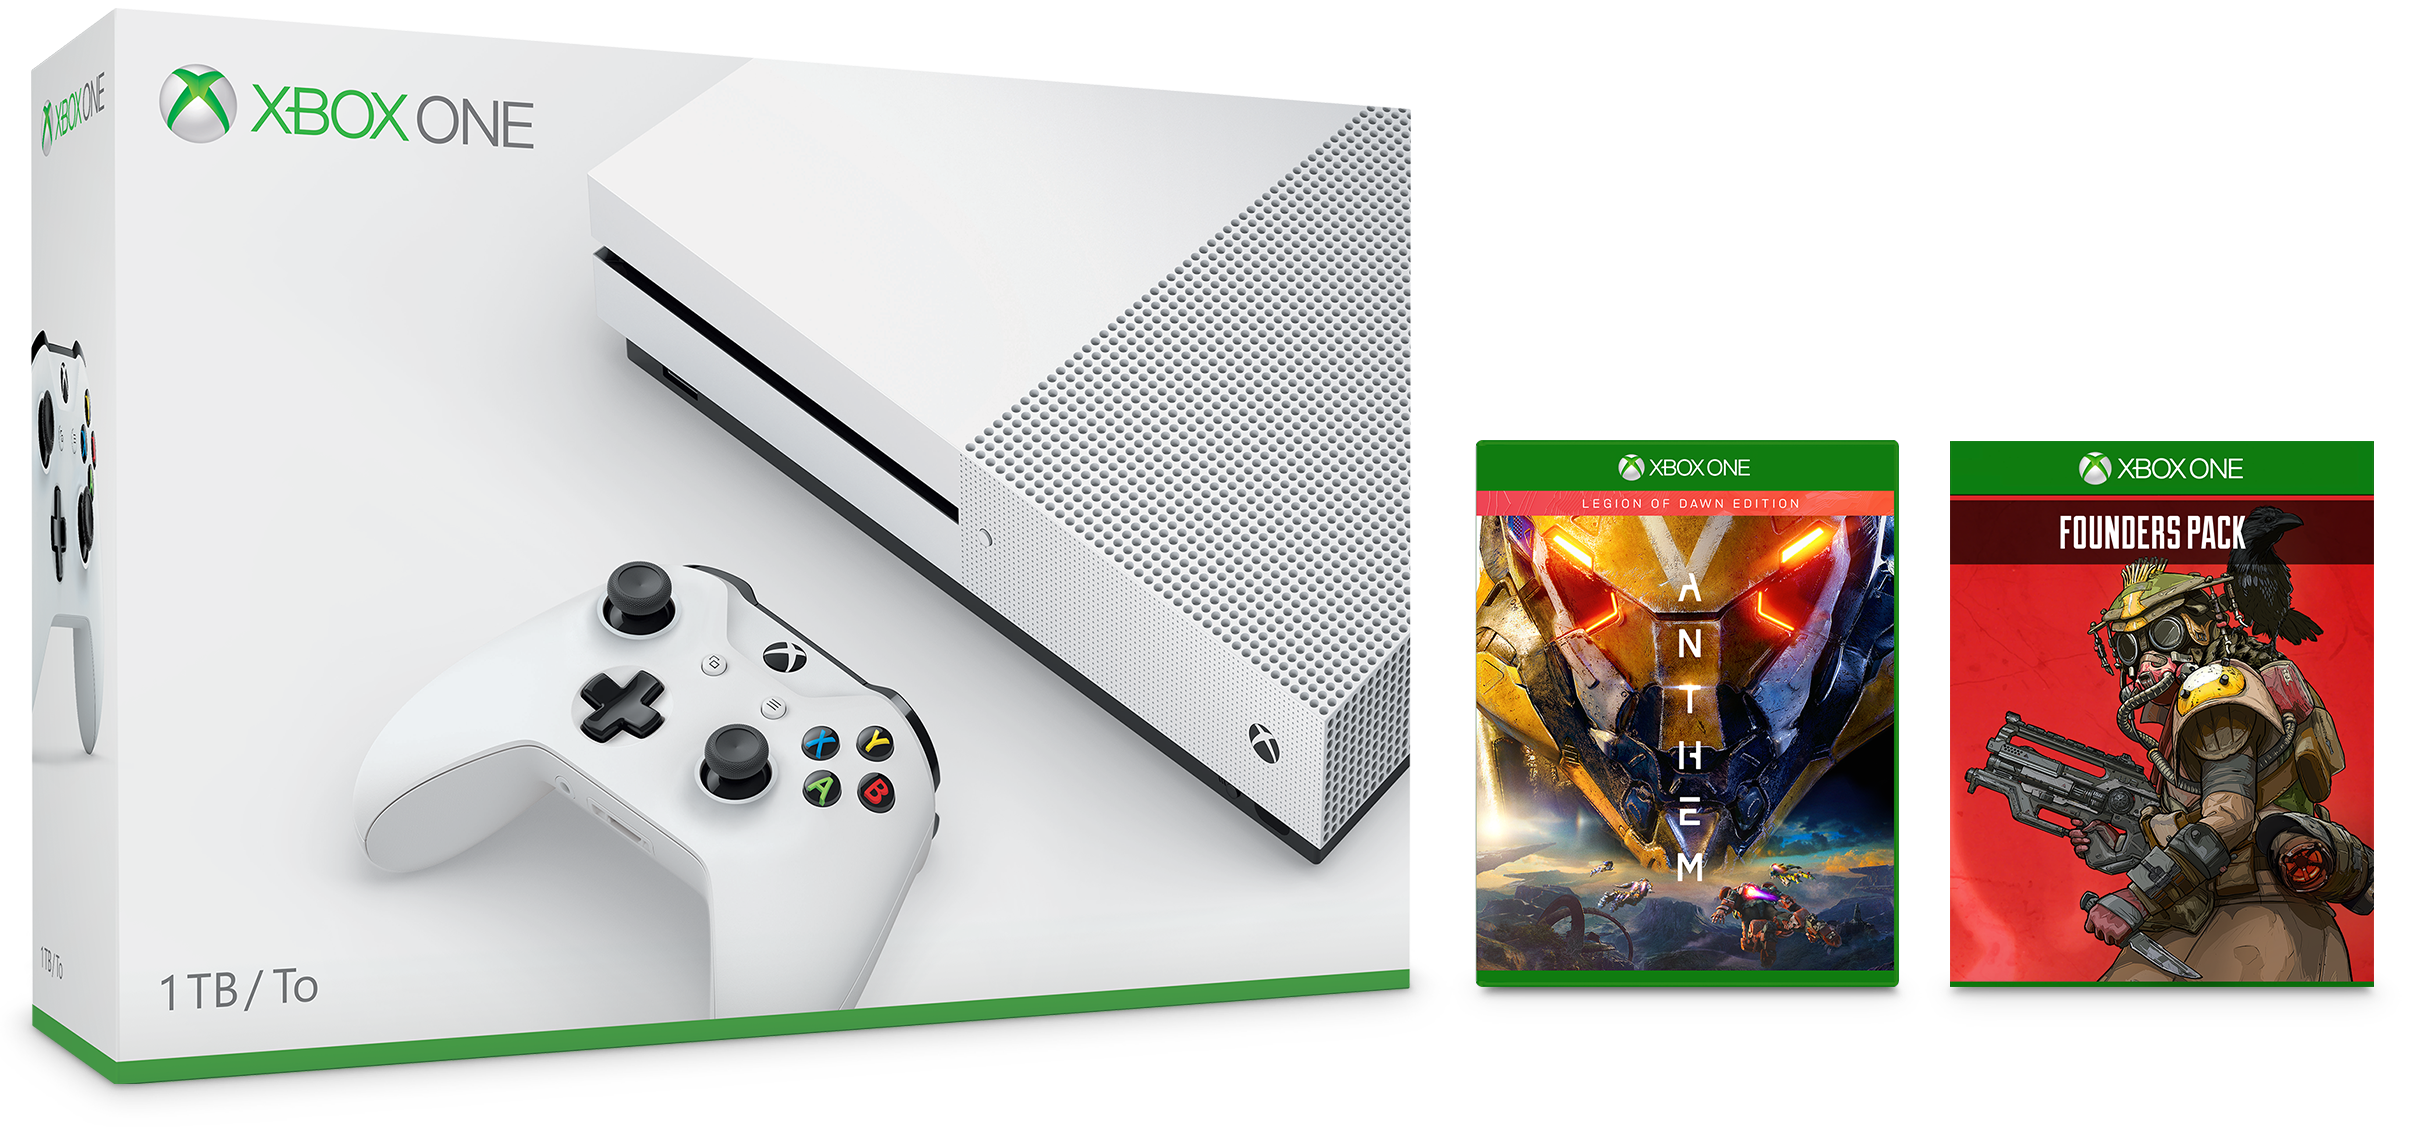 Xbox One S Anthem Bundle and Apex Legends Founder's Pack